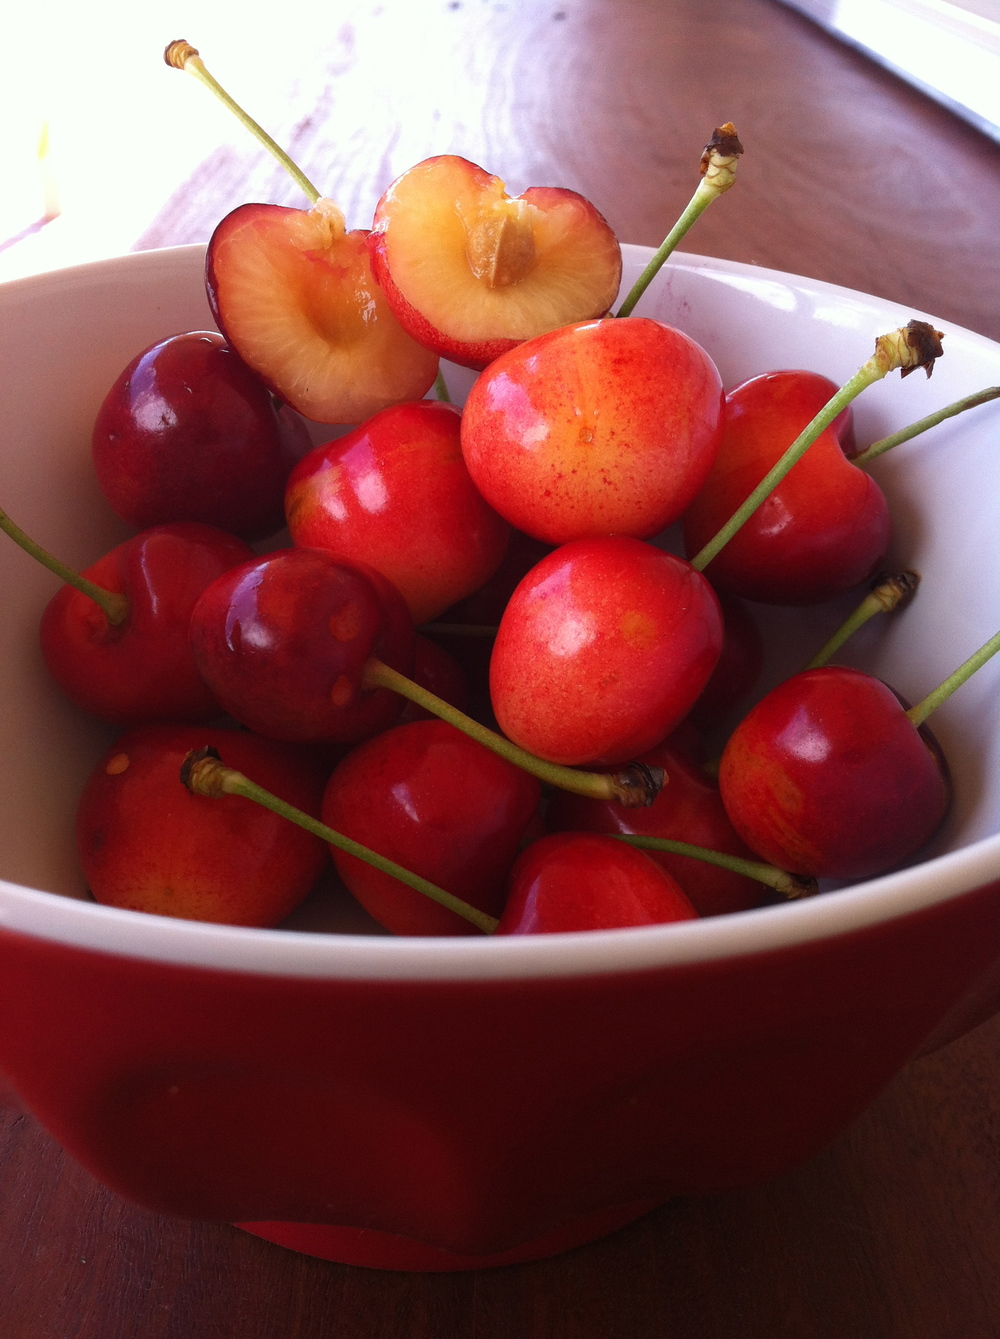 White-fleshed cherries